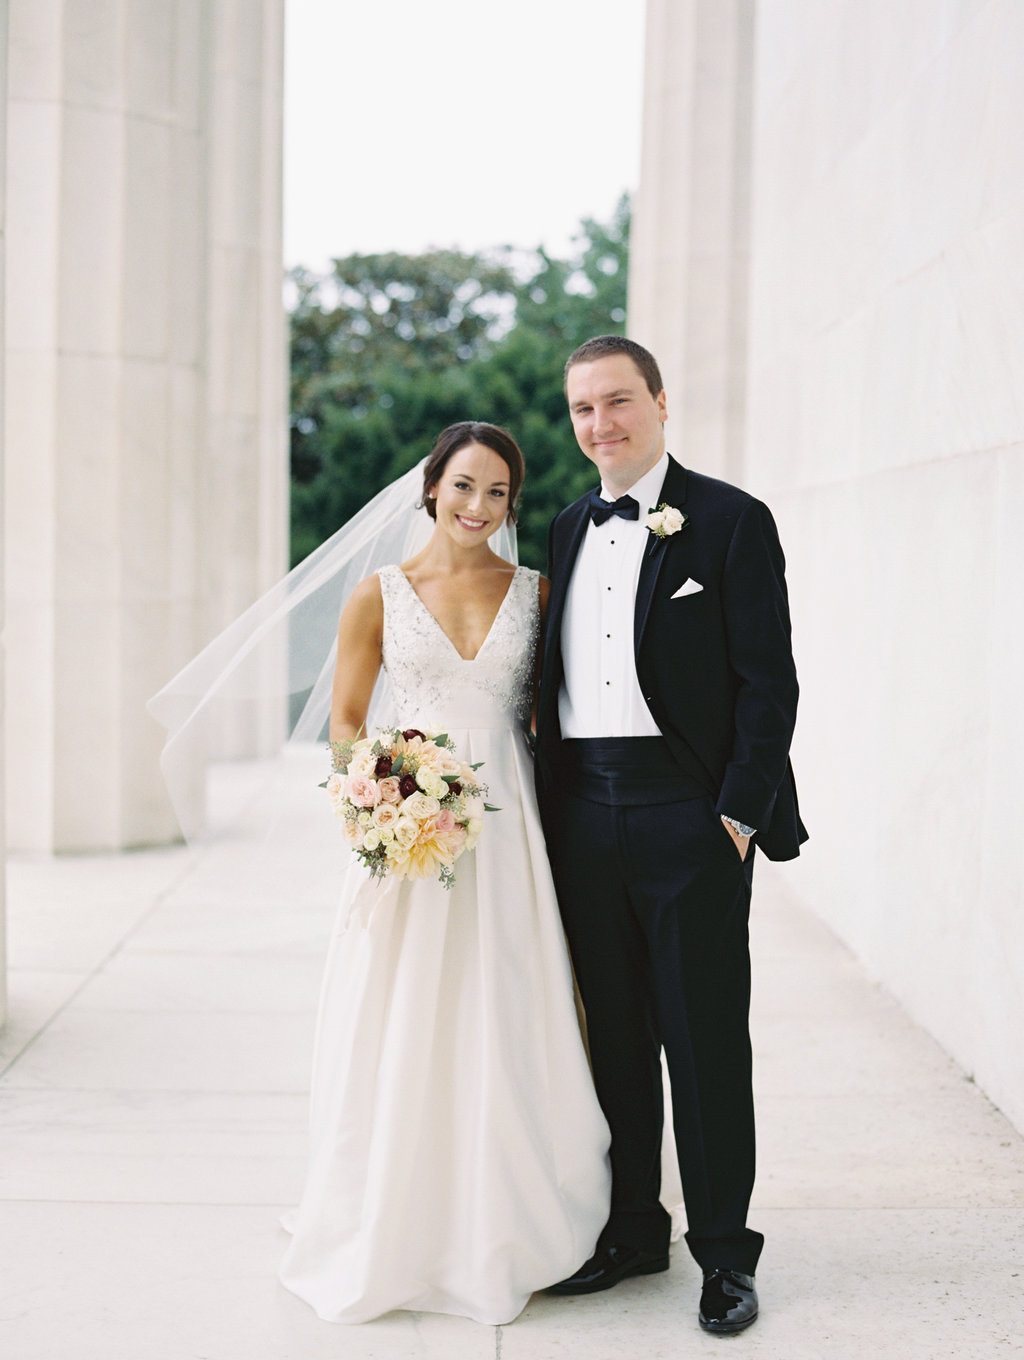 Modern Metallics Wedding in Downtown Washington DC - photo by Abby Jiu Photography https://ruffledblog.com/modern-metallics-wedding-in-downtown-washington-dc